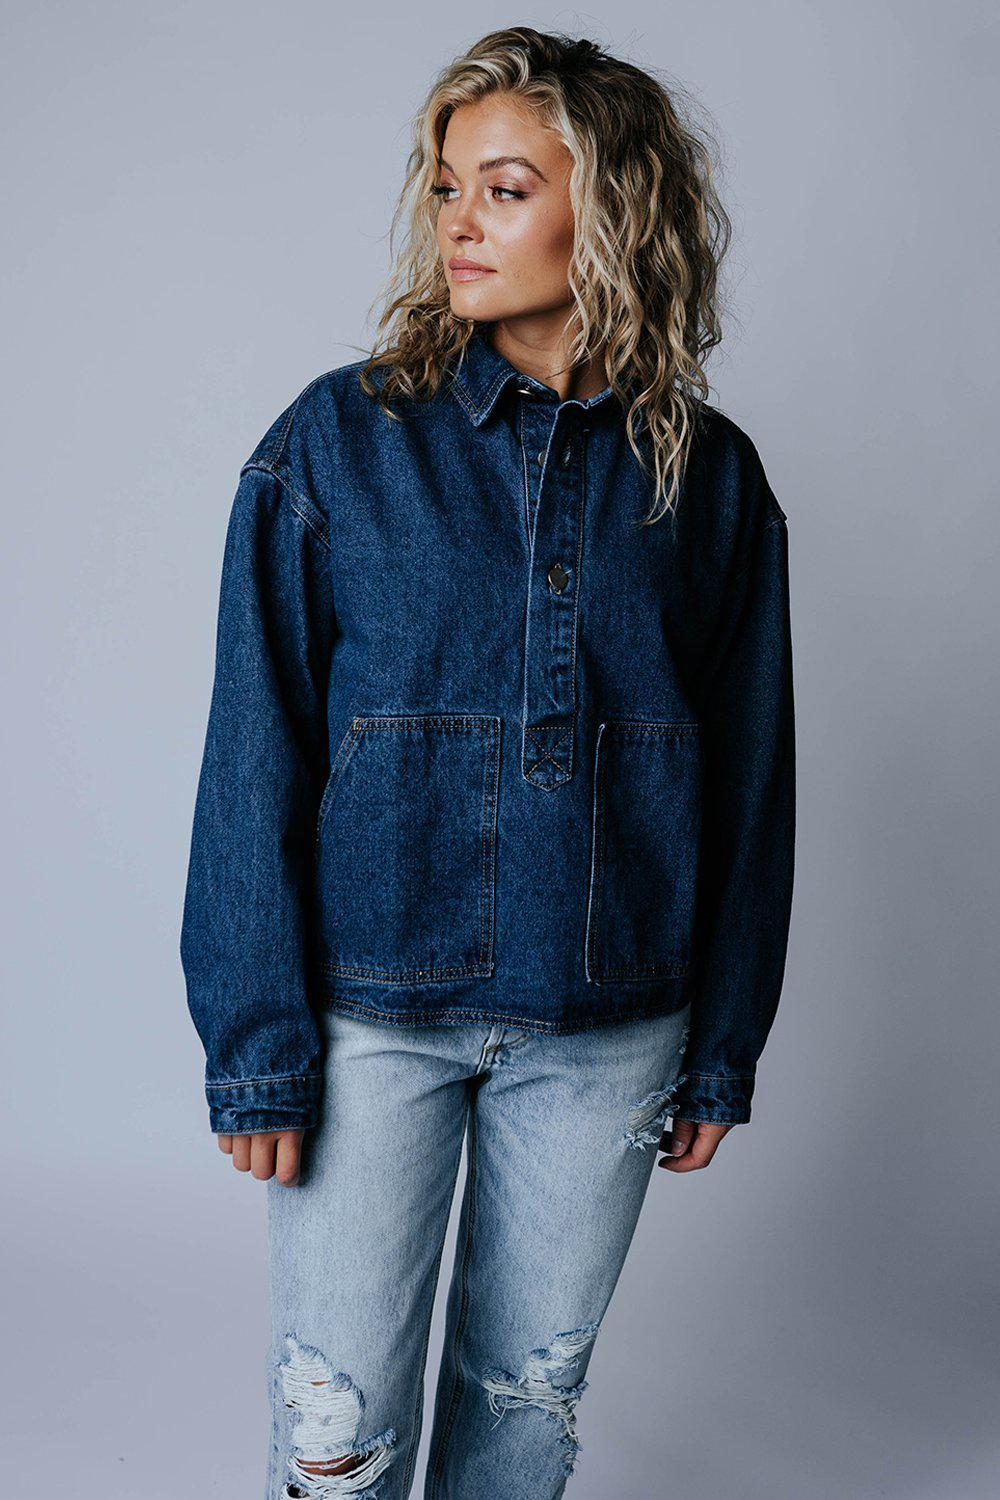 best_seller, Karma's Denim Jacket - FINAL SALE, , women's clothing, dresses, skirts, coats, jackets, shoes, boots, tops, tee shirts, jeans, free people, levi's, rollas, jumpsuits, bottoms, tops, sweaters, pullovers, pants, shorts, sweats,.